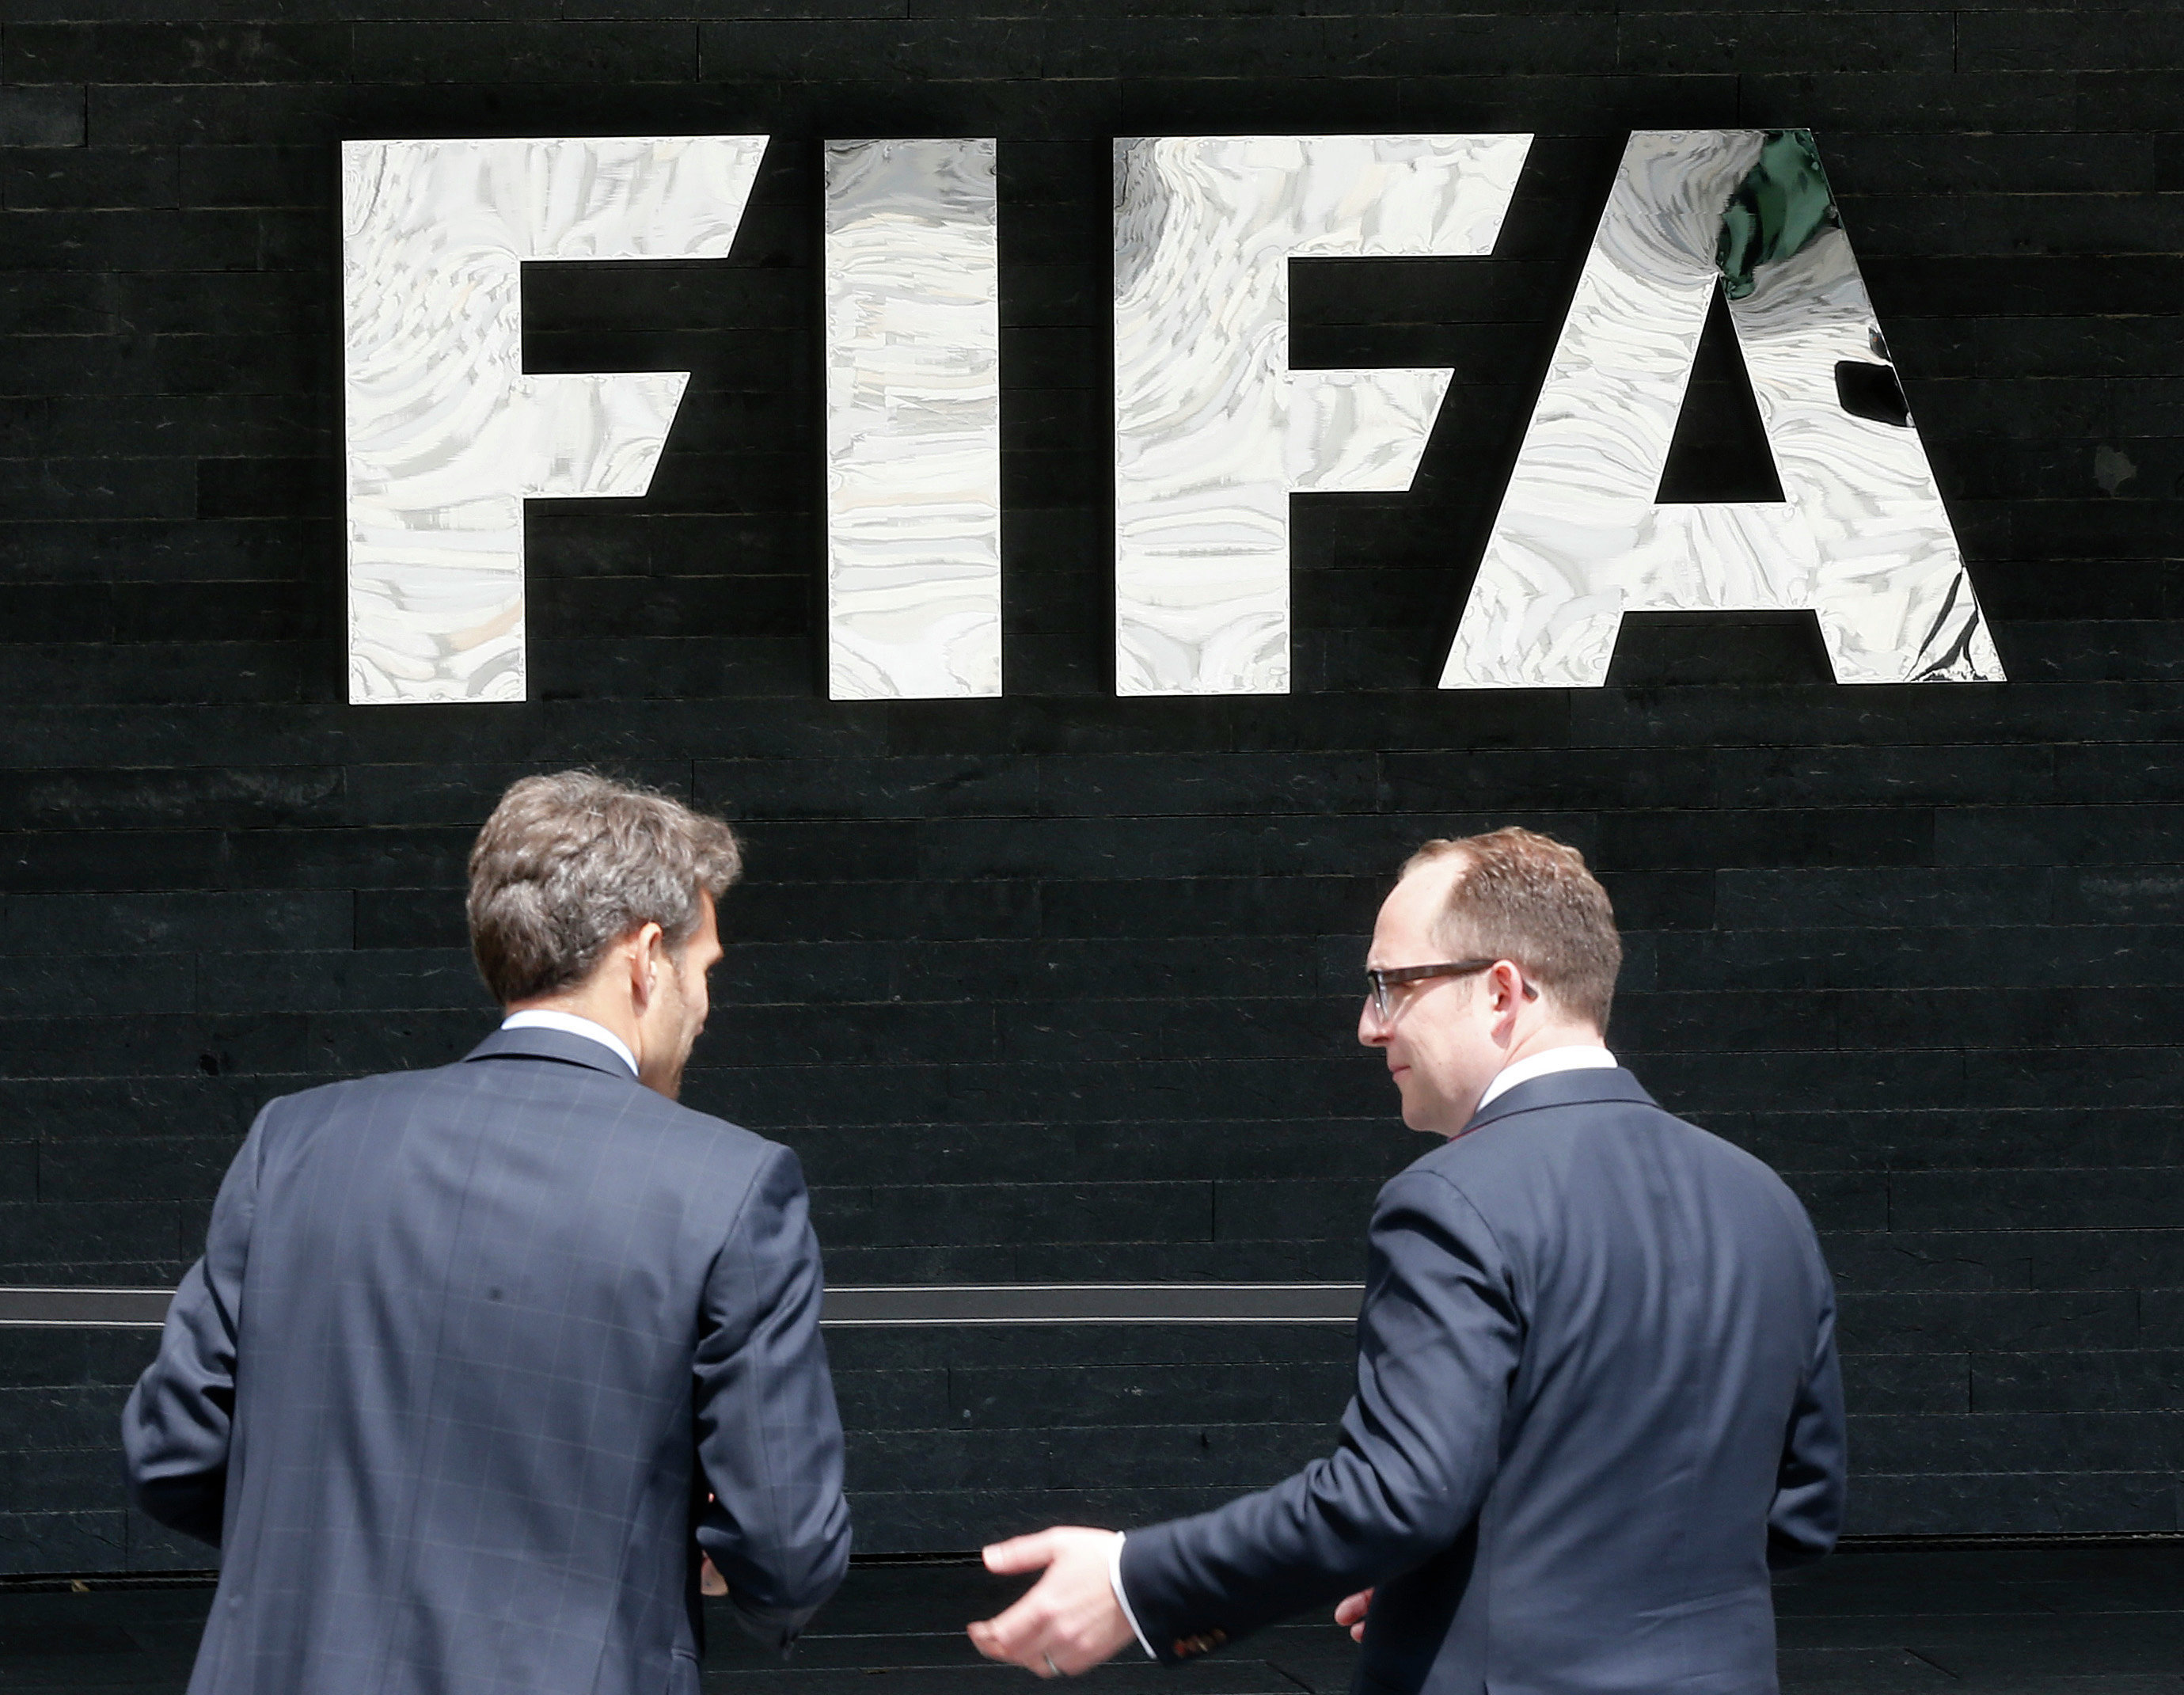 As top football executives in the Americas are losing their positions over the FIFA corruption investigation, the timing of the revelations - on the eve of the FIFA's presidential elections - seems to some designed for a shake up.